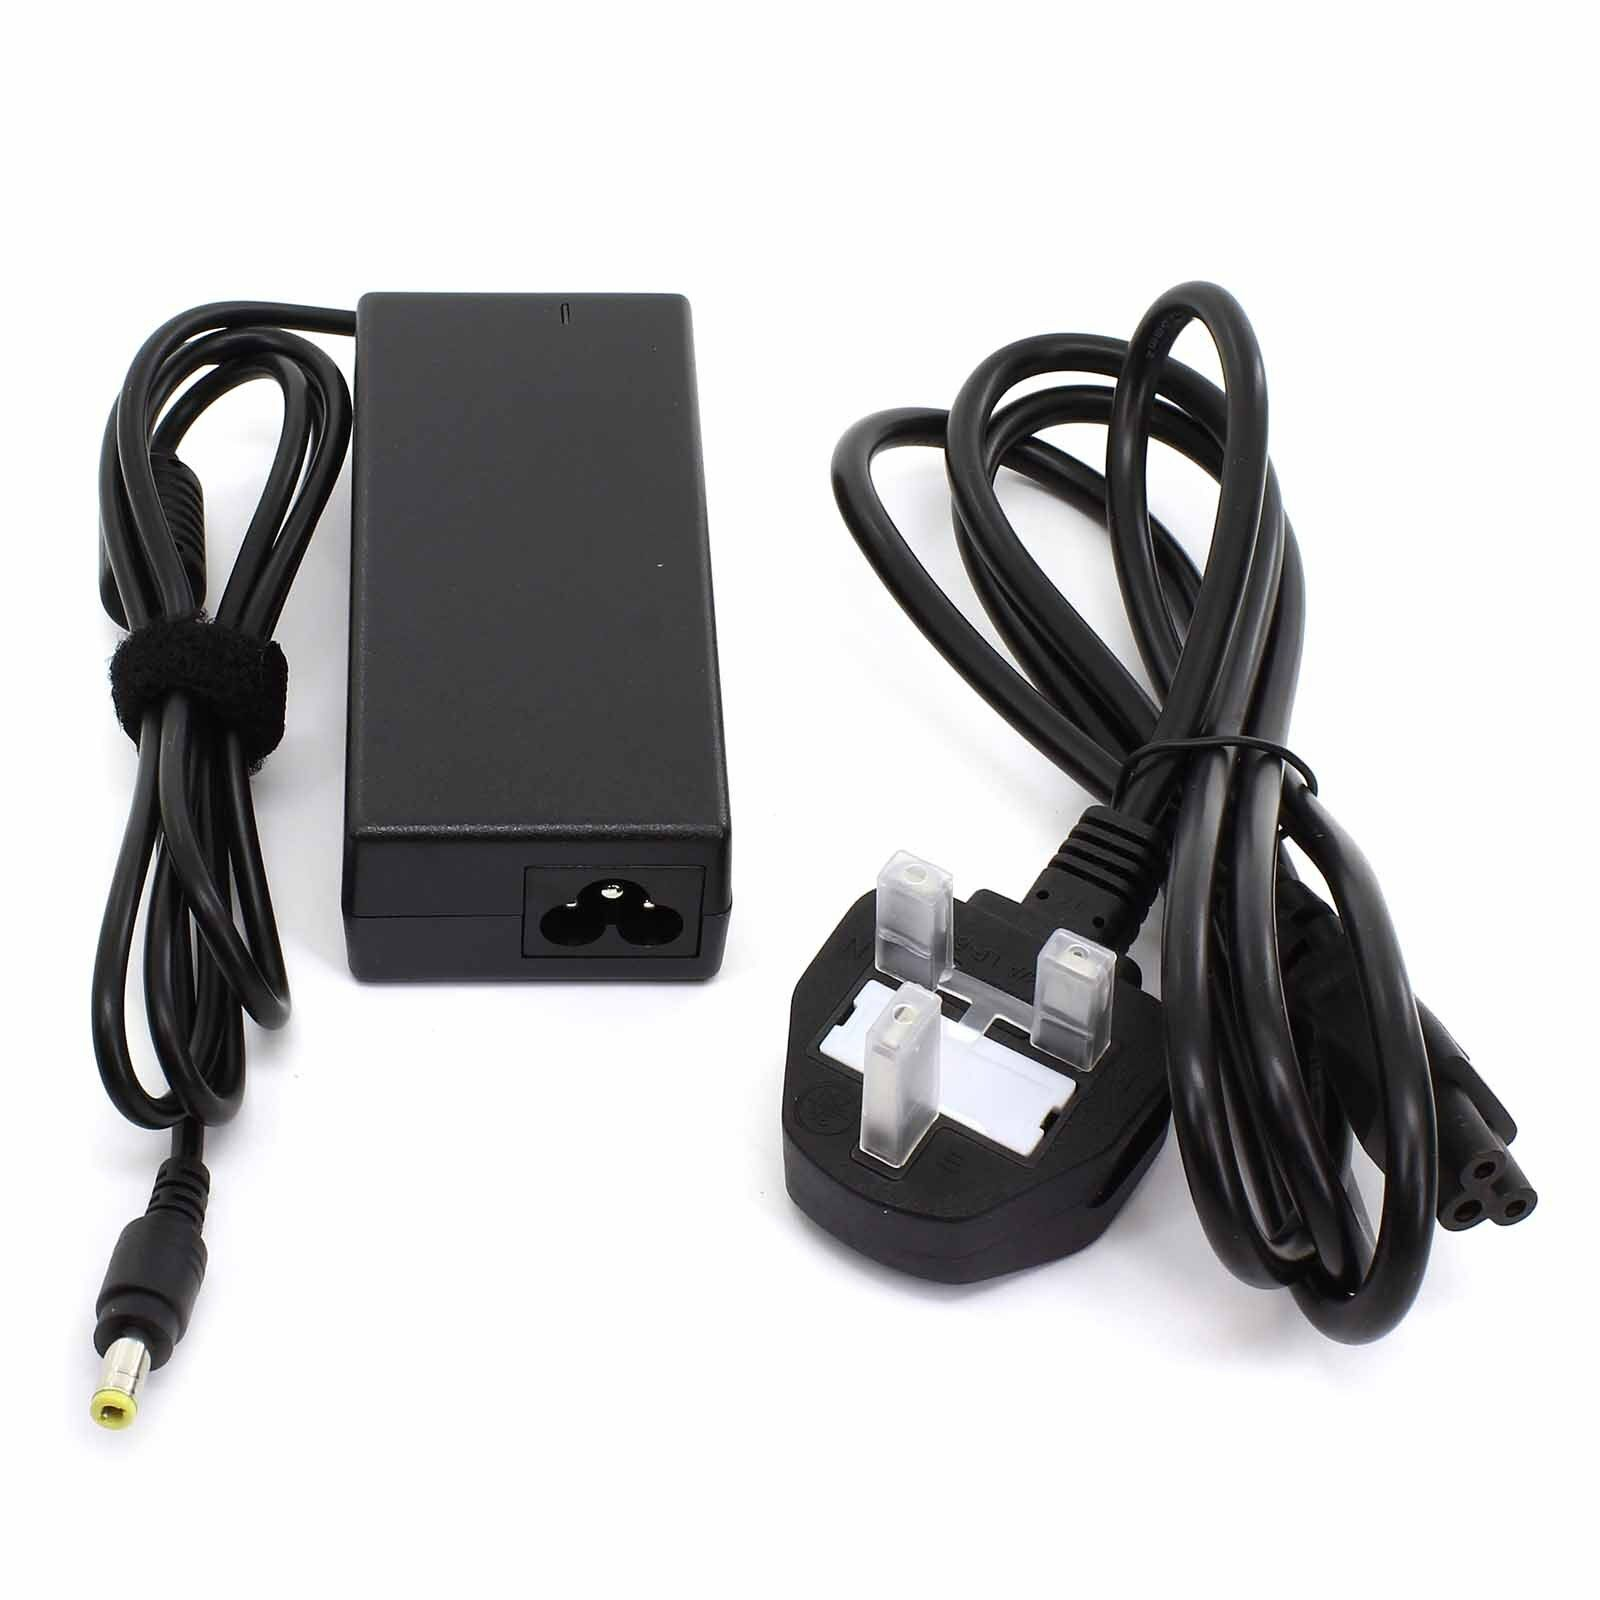 12v Overlander RC-6S Turnigy Accucel 6 ac/dc power supply cable adaptor